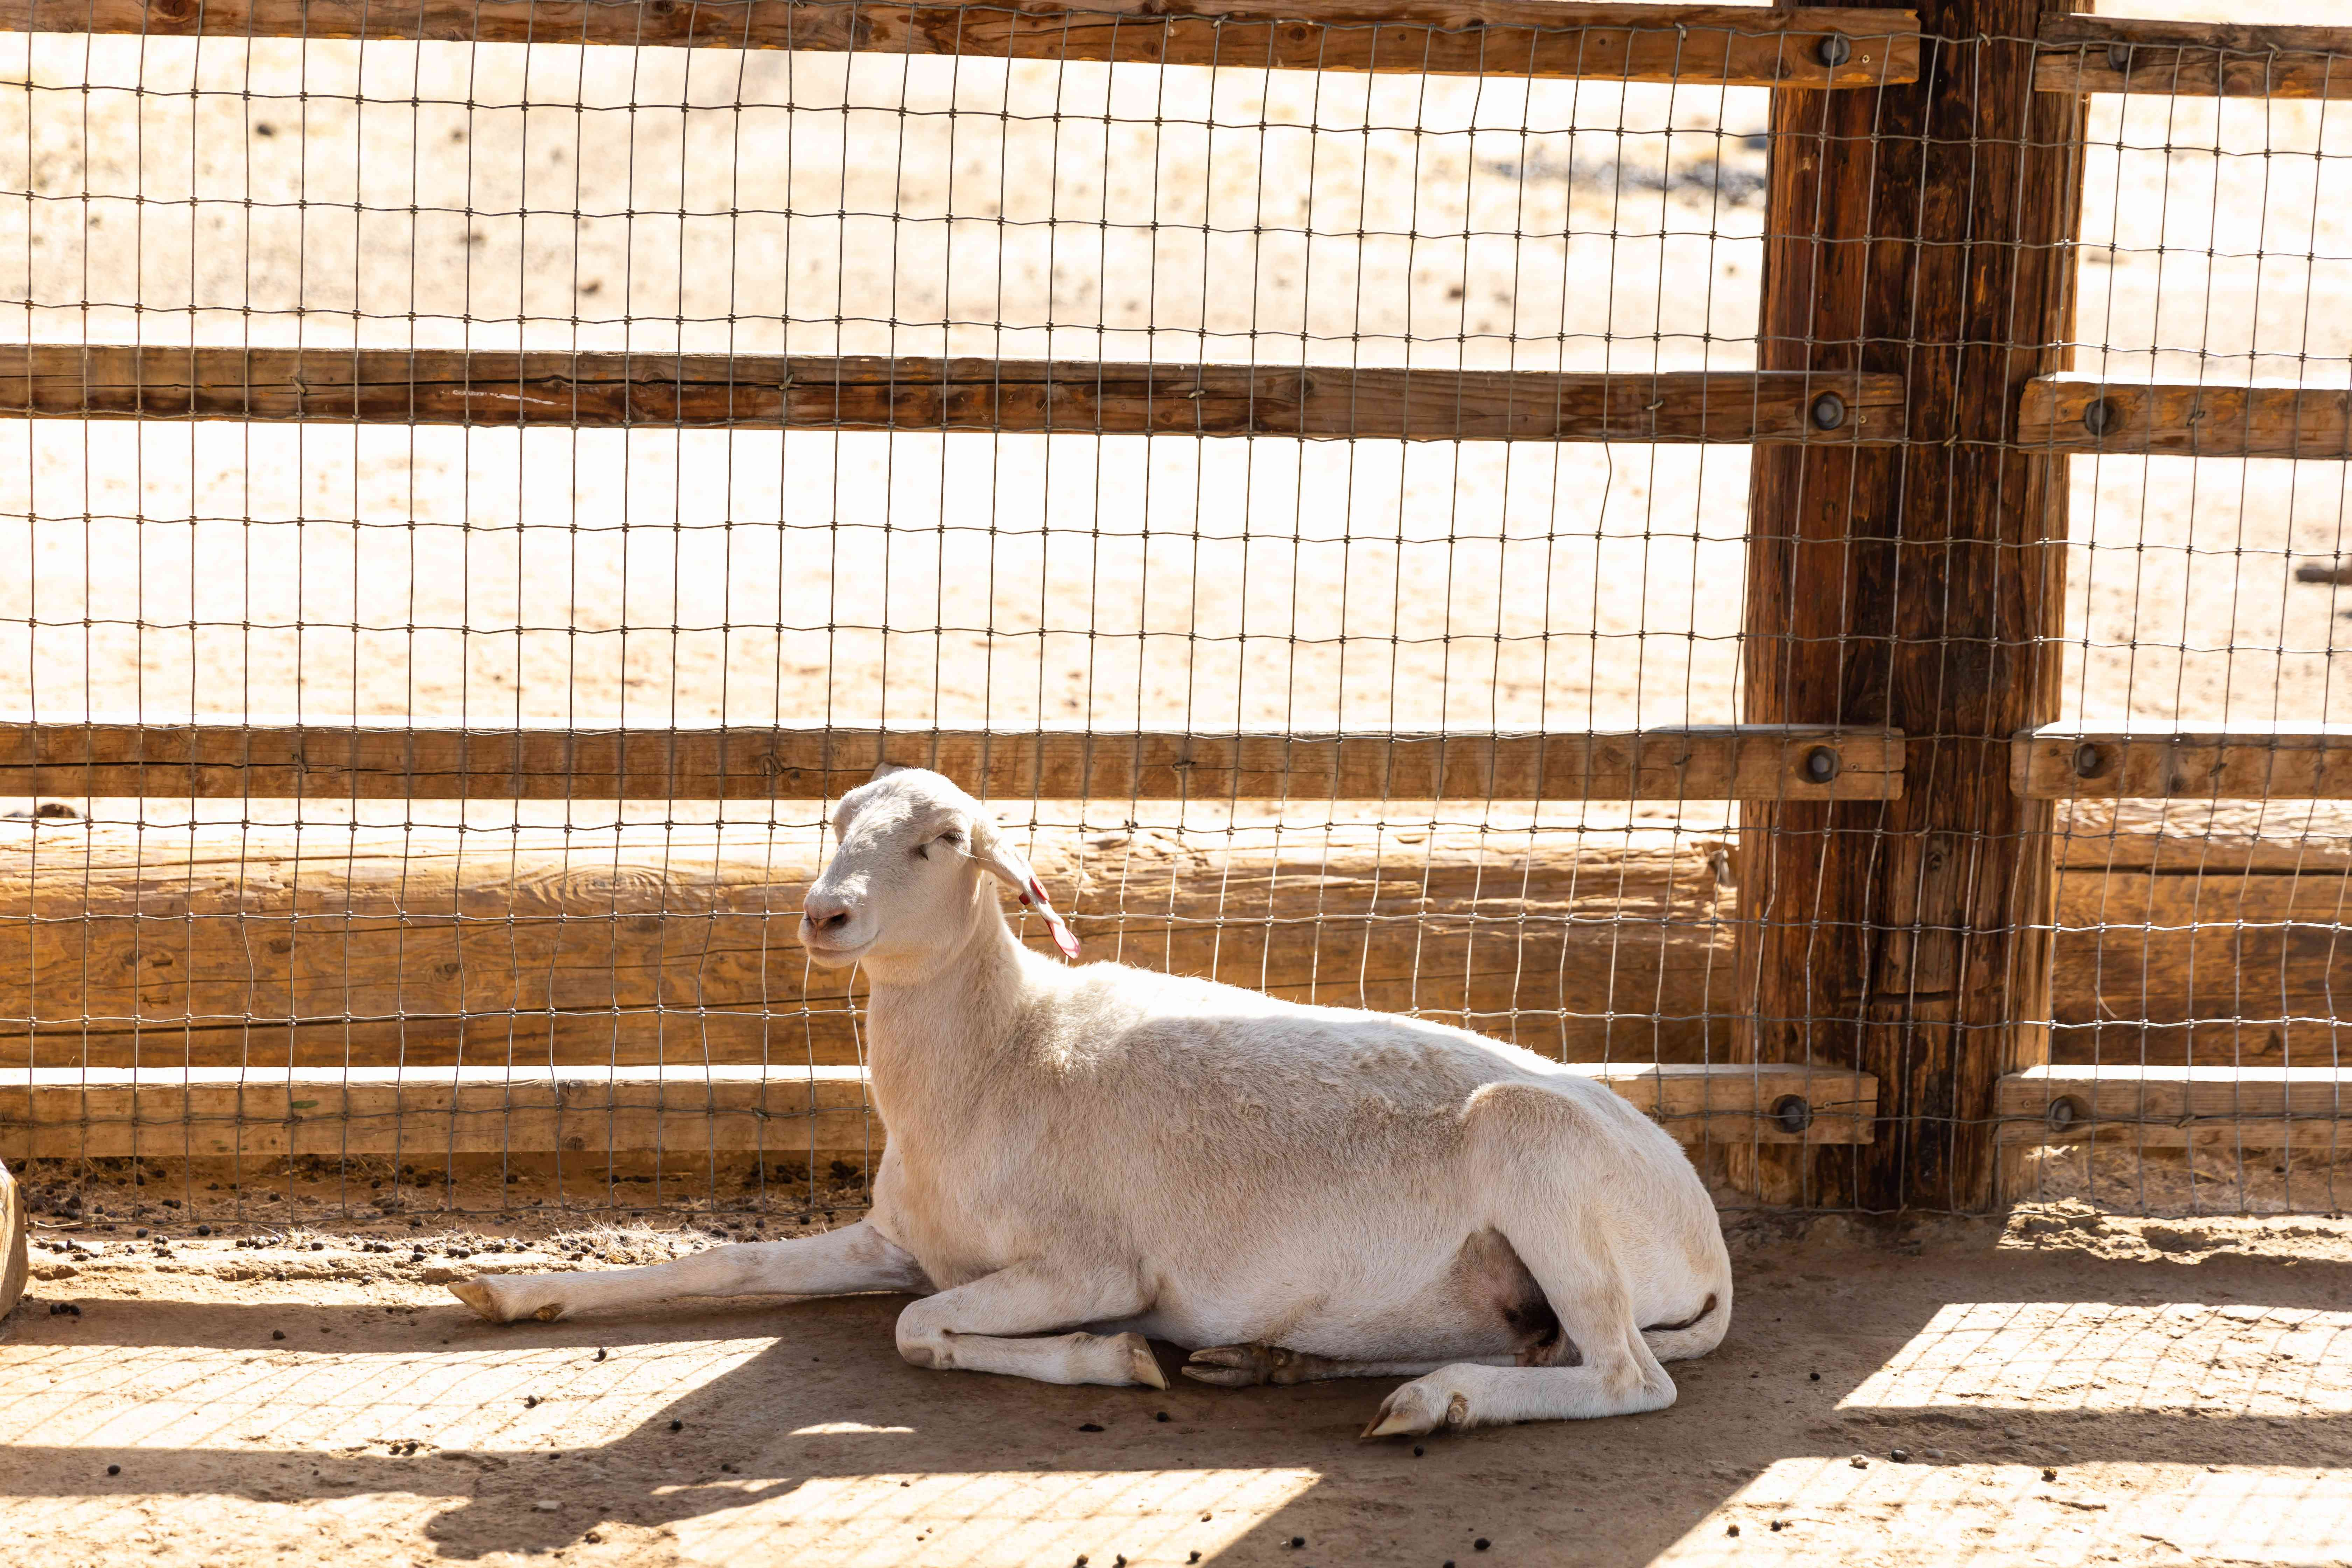 Adult goat rests on ground near wire fence